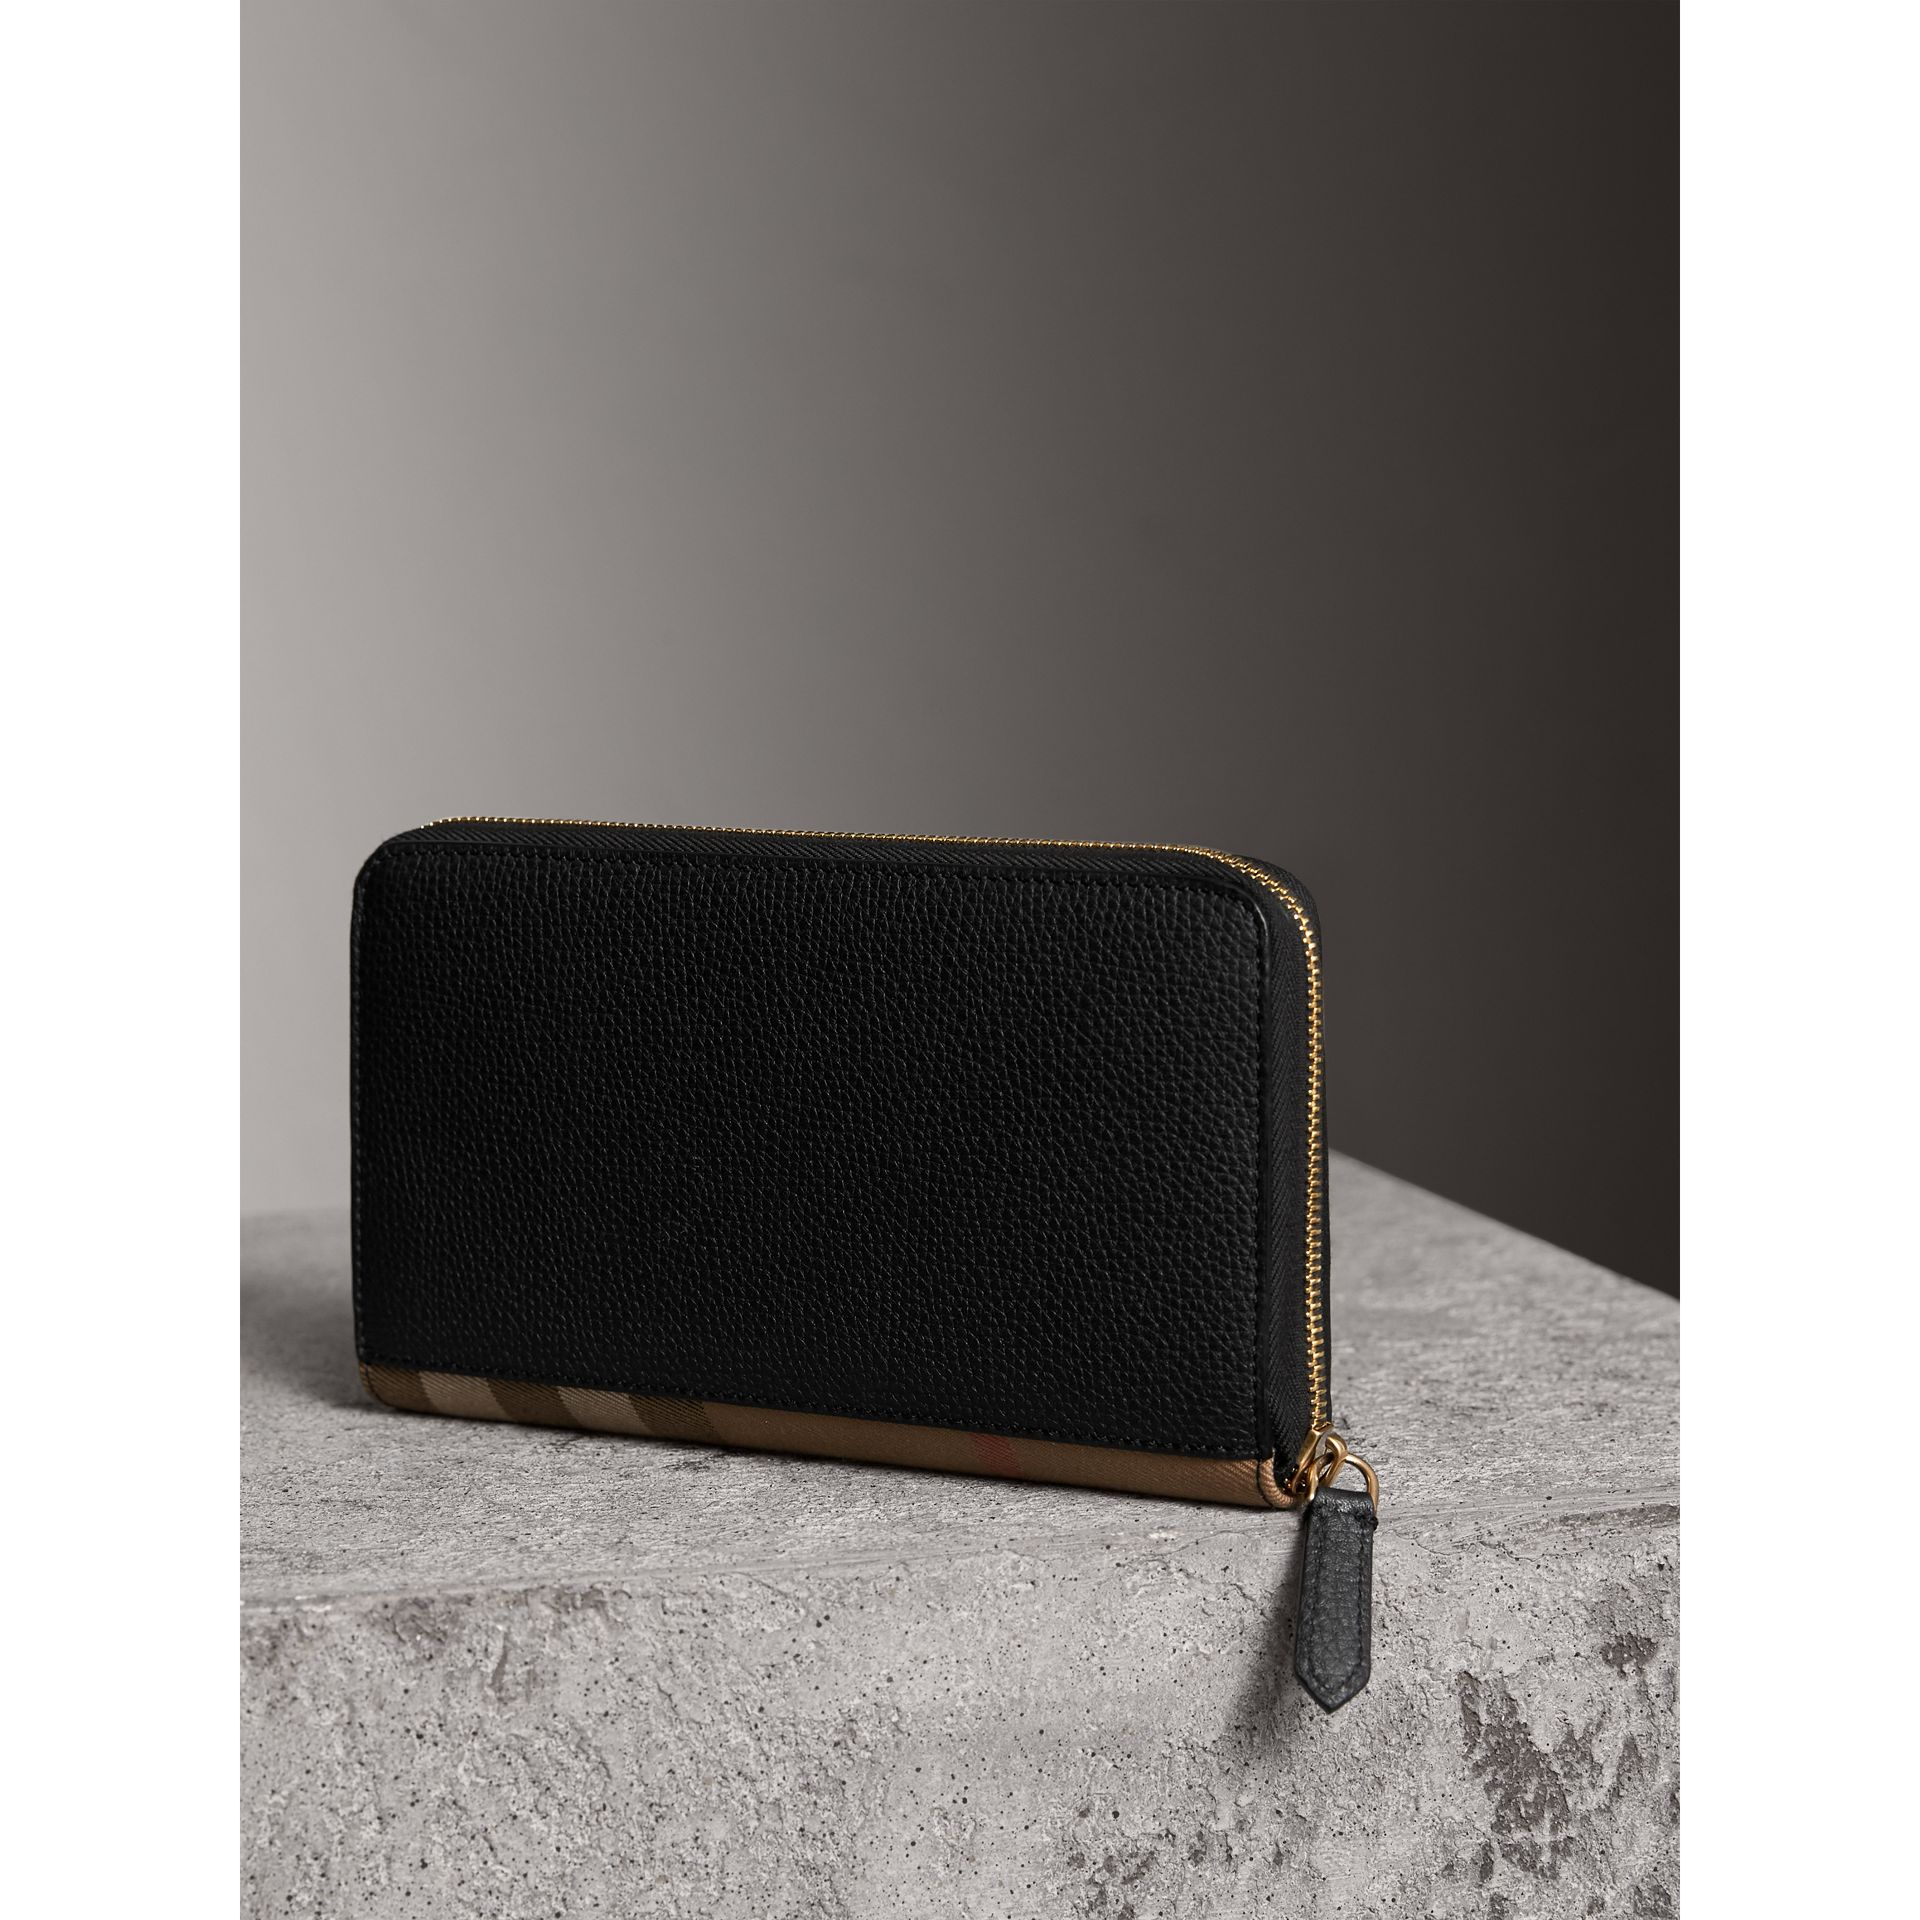 House Check and Grainy Leather Ziparound Wallet in Black | Burberry - gallery image 2